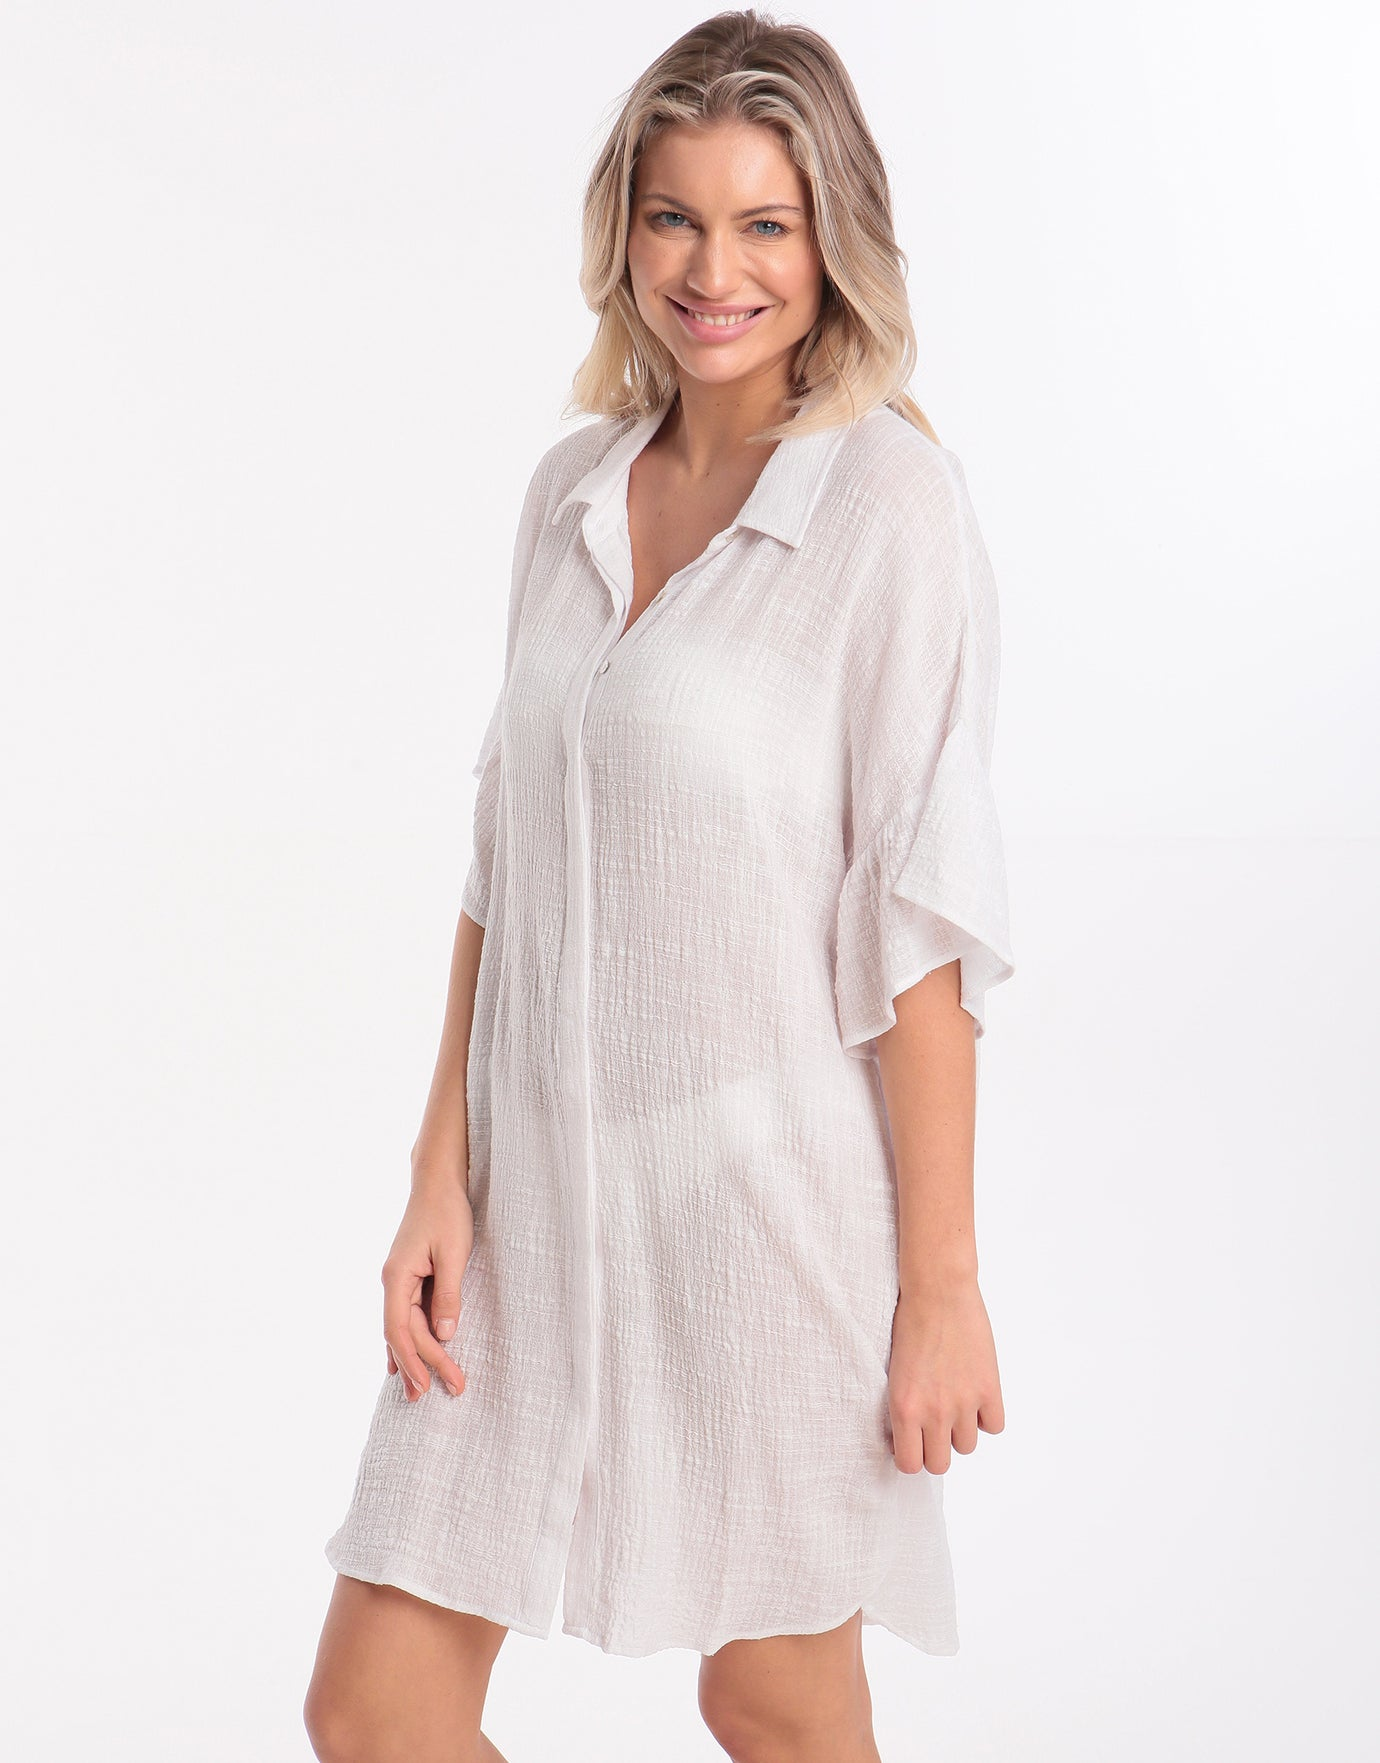 Seafolly Ruffled Sleeve Beach Shirt - White